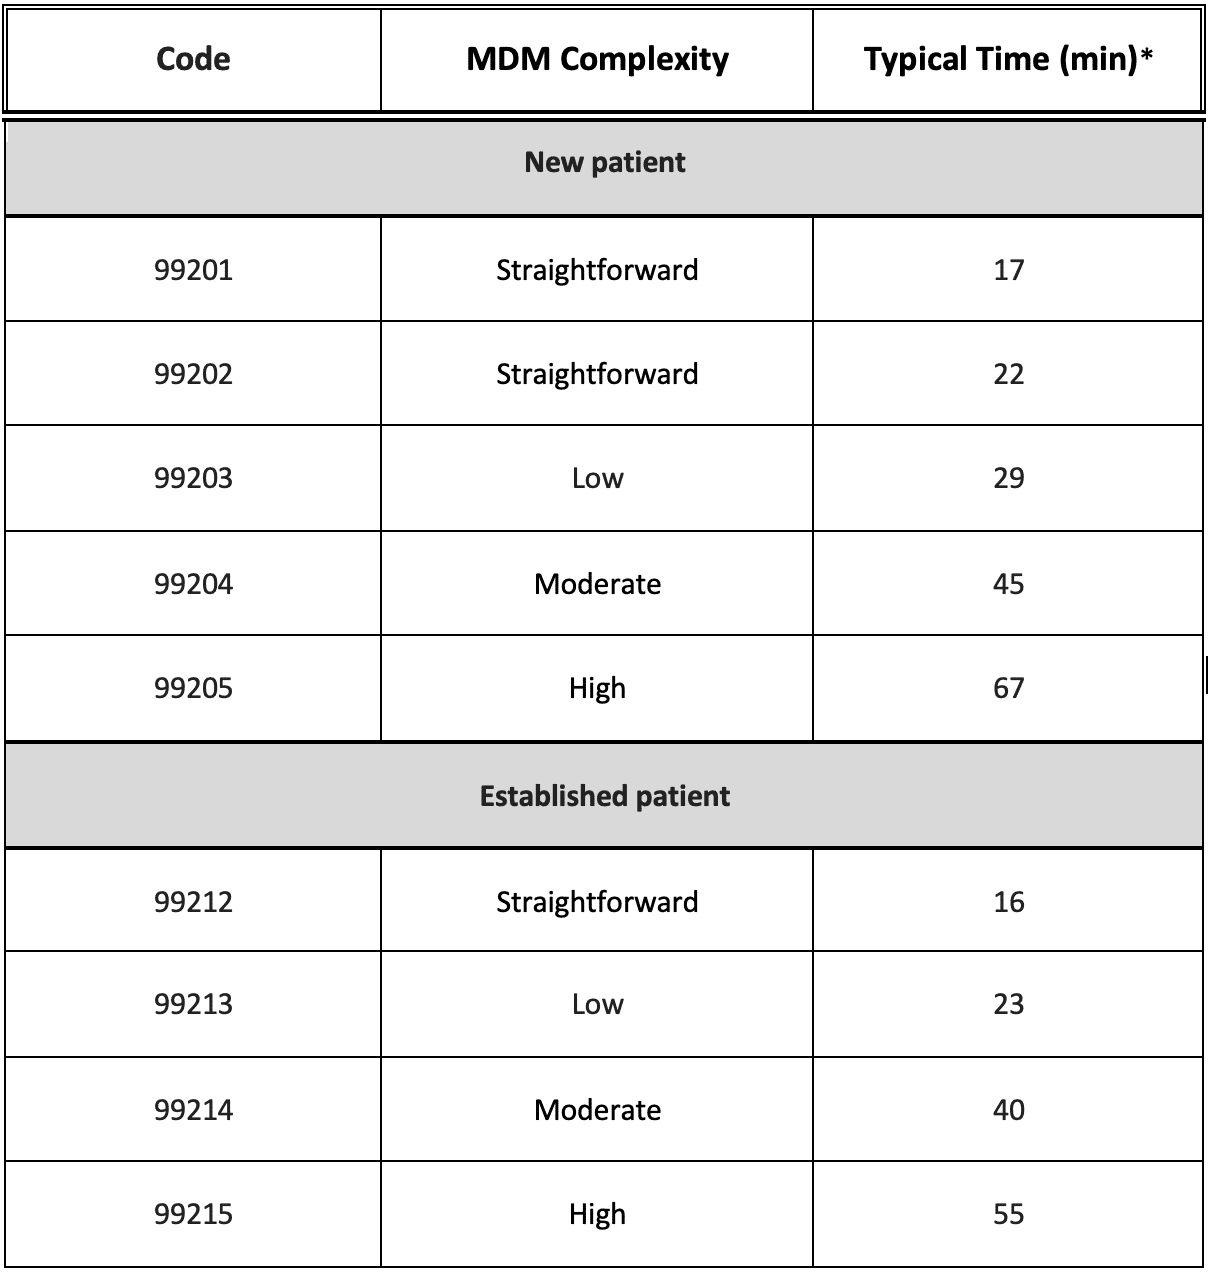 MDM Complexity and Time Requirements for Office E&M Levels